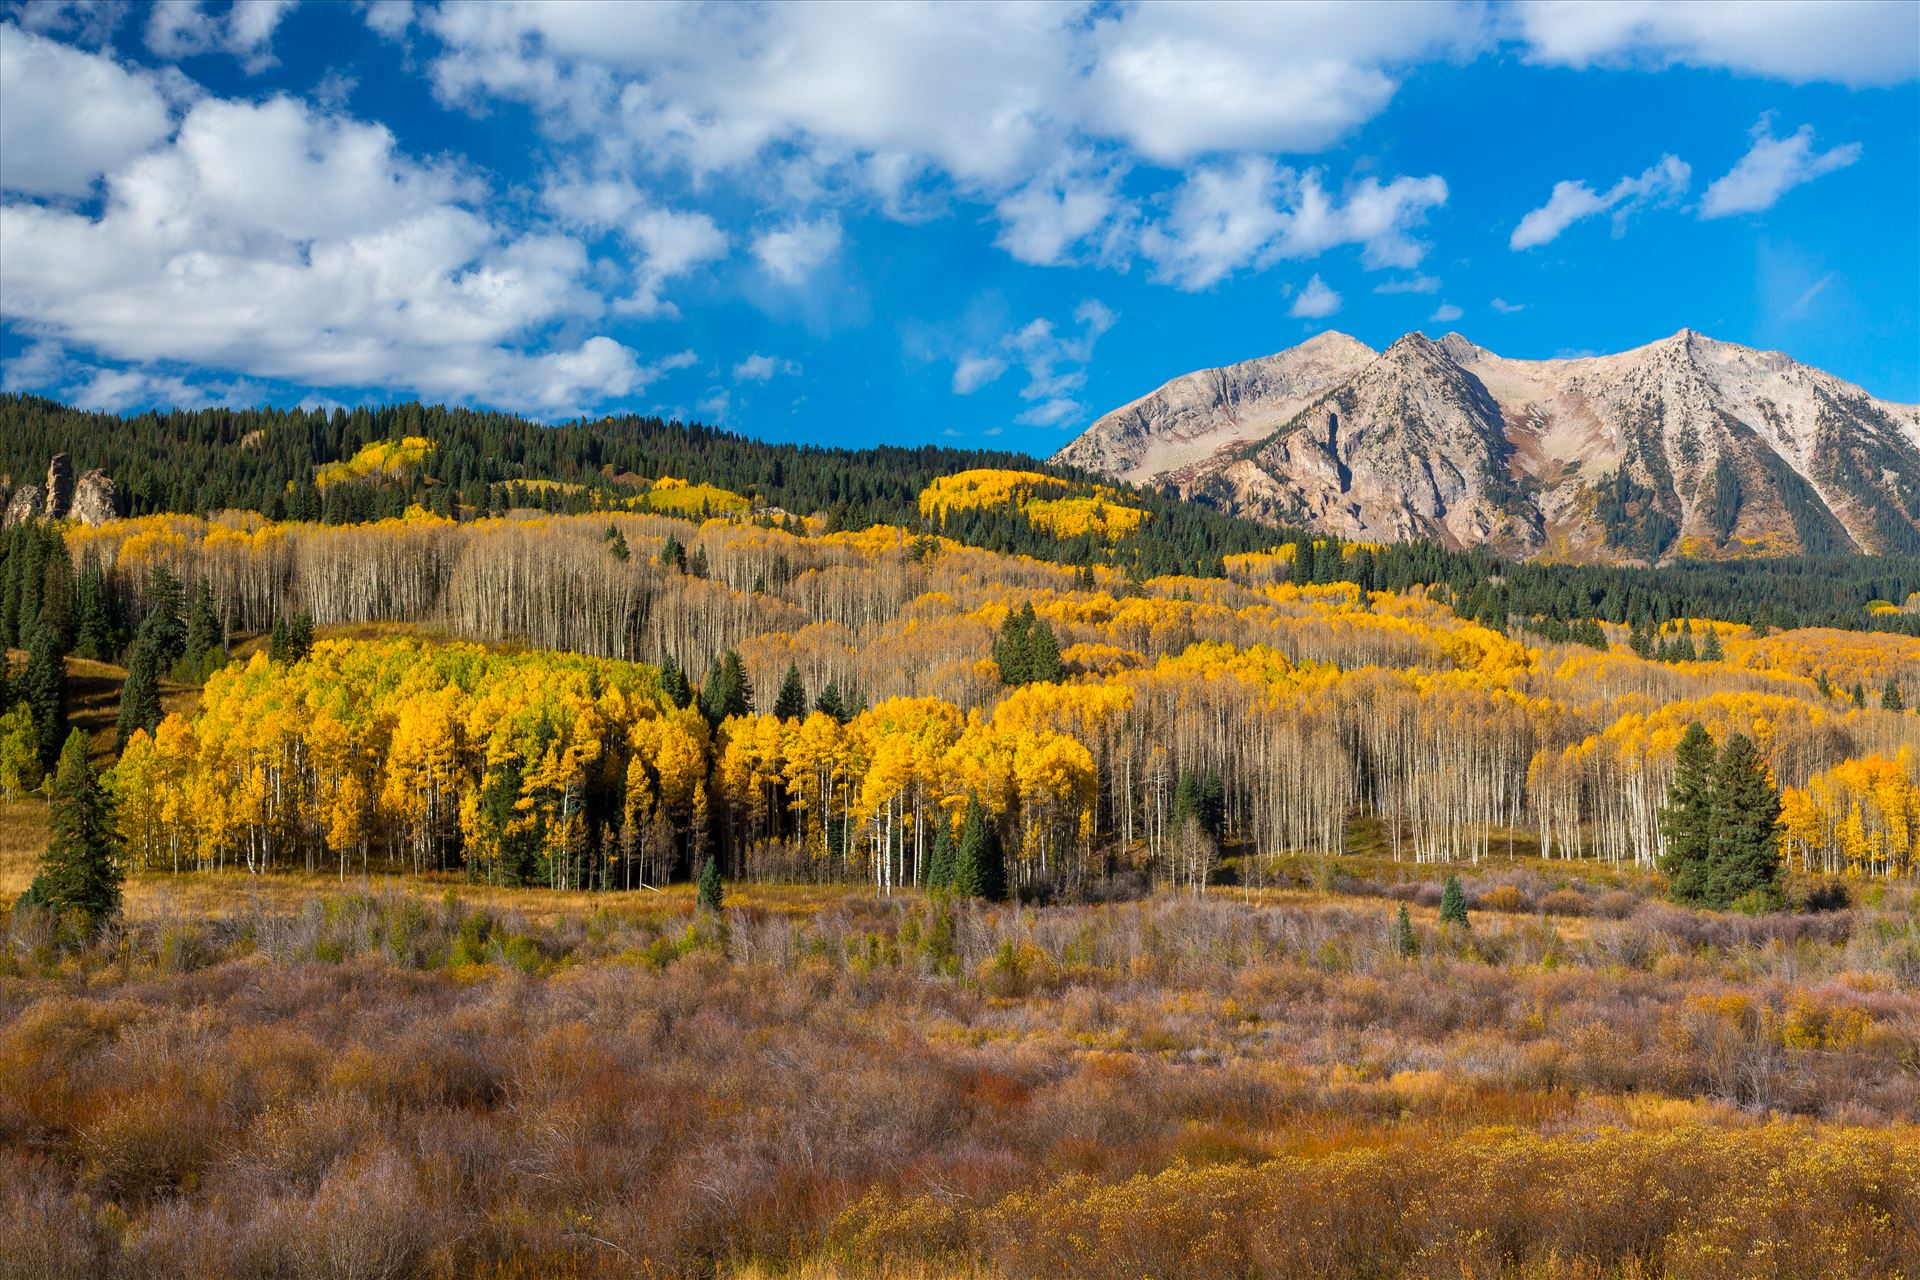 East Beckwith Mountain - East Beckwith mountain surrounded by fall colors. Taken a few steps off Kebler Pass, Crested Butte, Colorado. by Scott Smith Photos